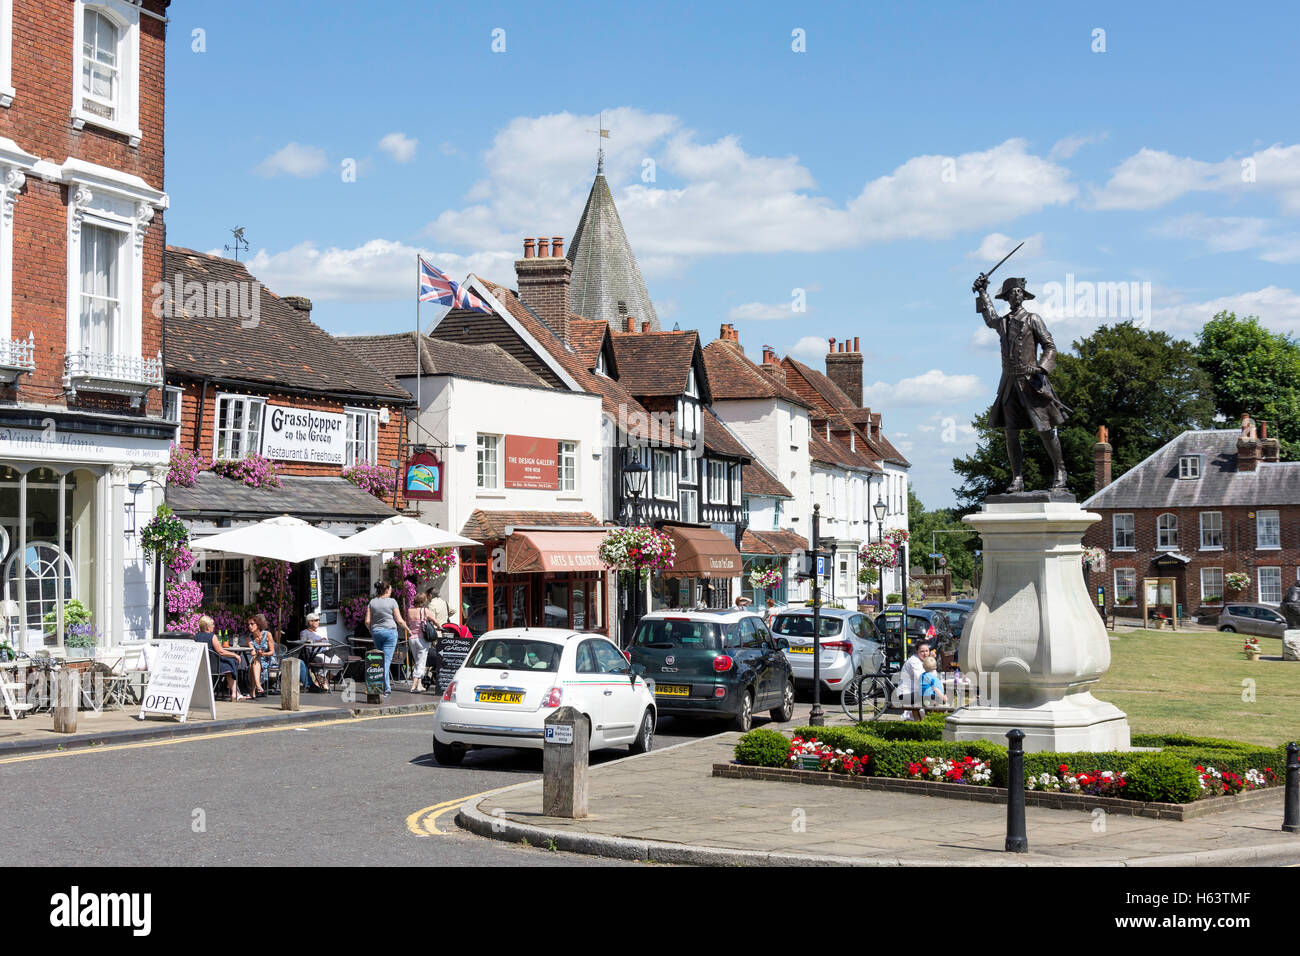 The Green showing General James Wolff Statue, Vicarage Hill, Westerham, Kent, England, United Kingdom - Stock Image